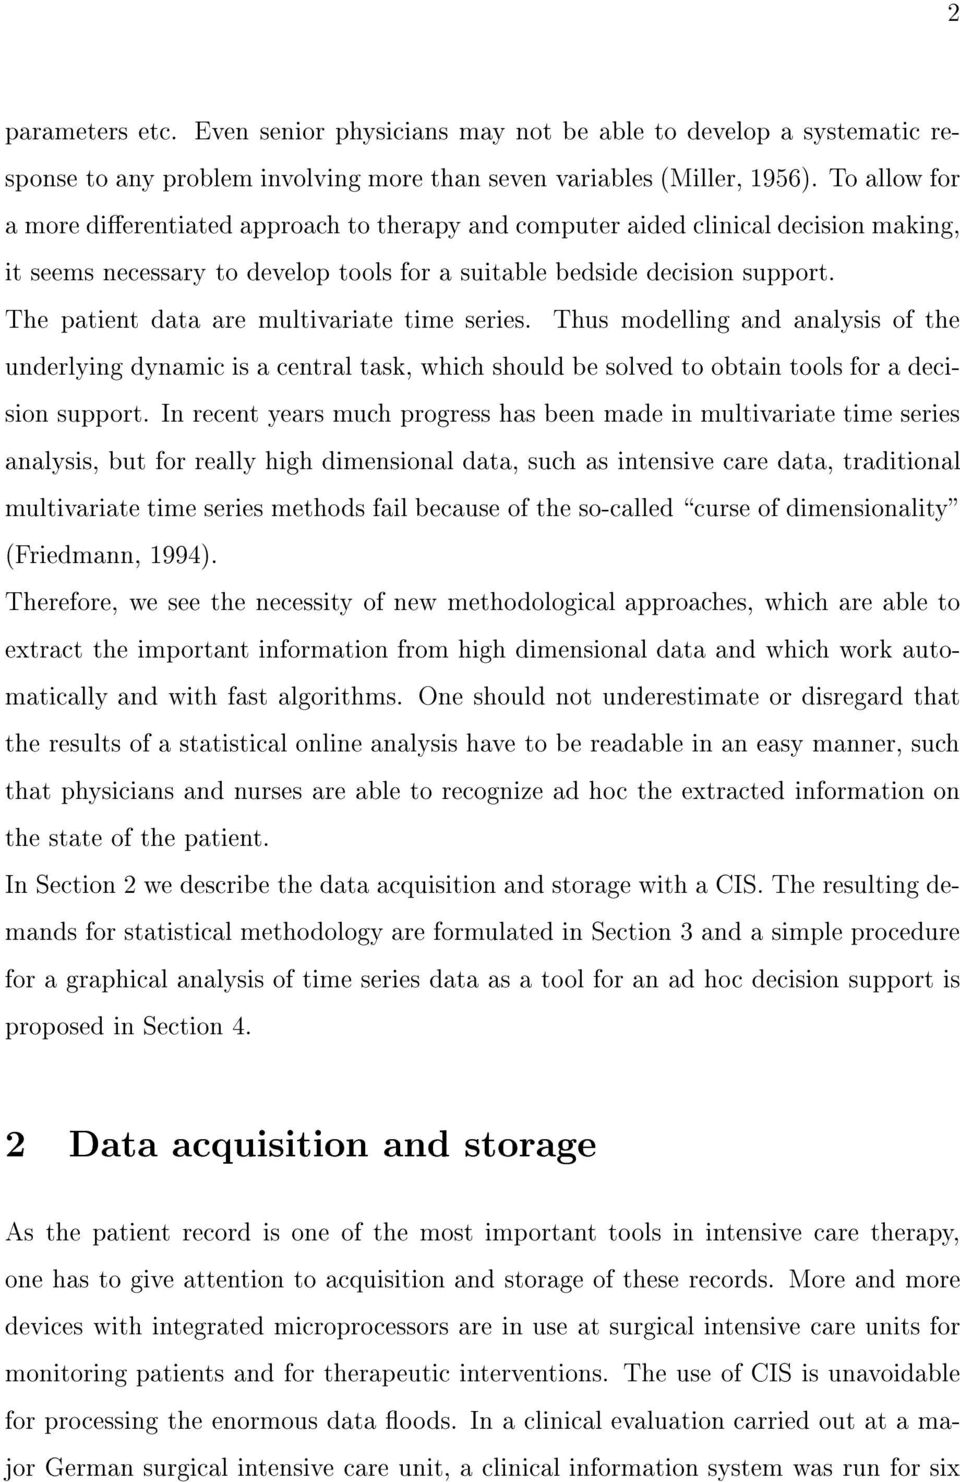 The patient data are multivariate time series. Thus modelling and analysis of the underlying dynamic is a central task, which should be solved to obtain tools for a decision support.